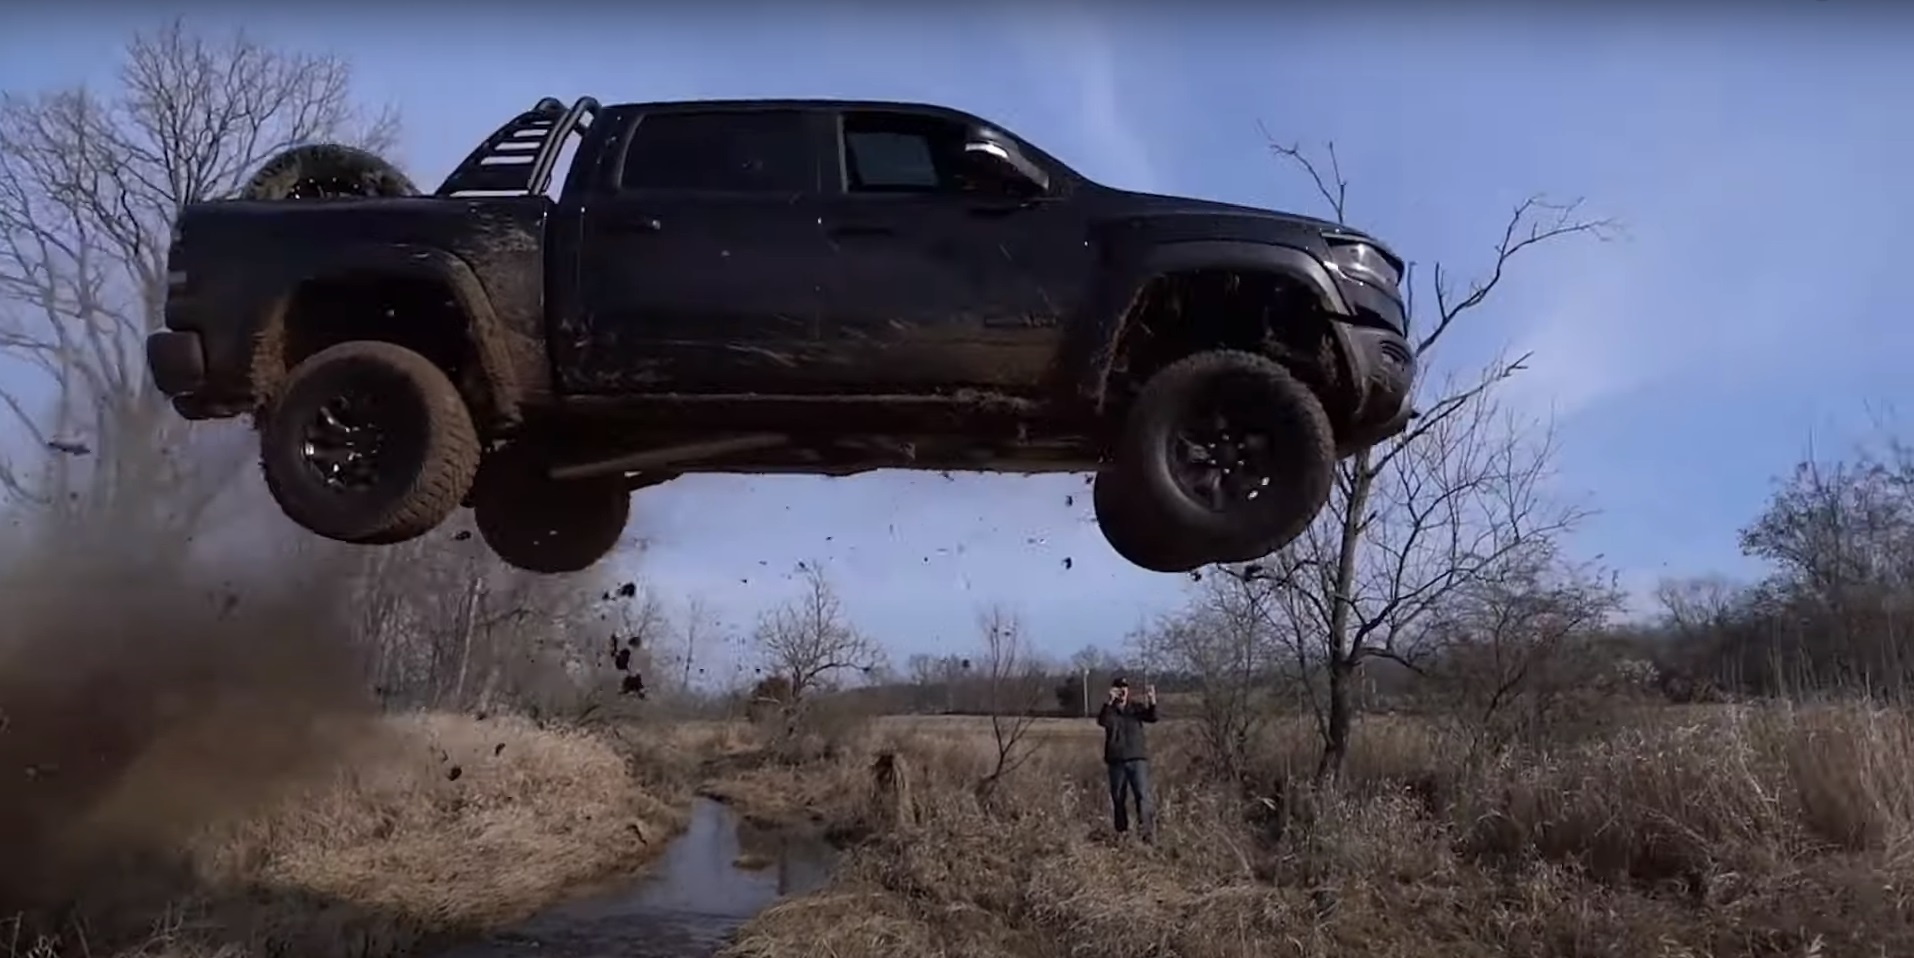 Fliegender 2021 RAM 1500 TRX Pickup Truck Video: Fliegender 2021 RAM 1500 TRX Pickup Truck!